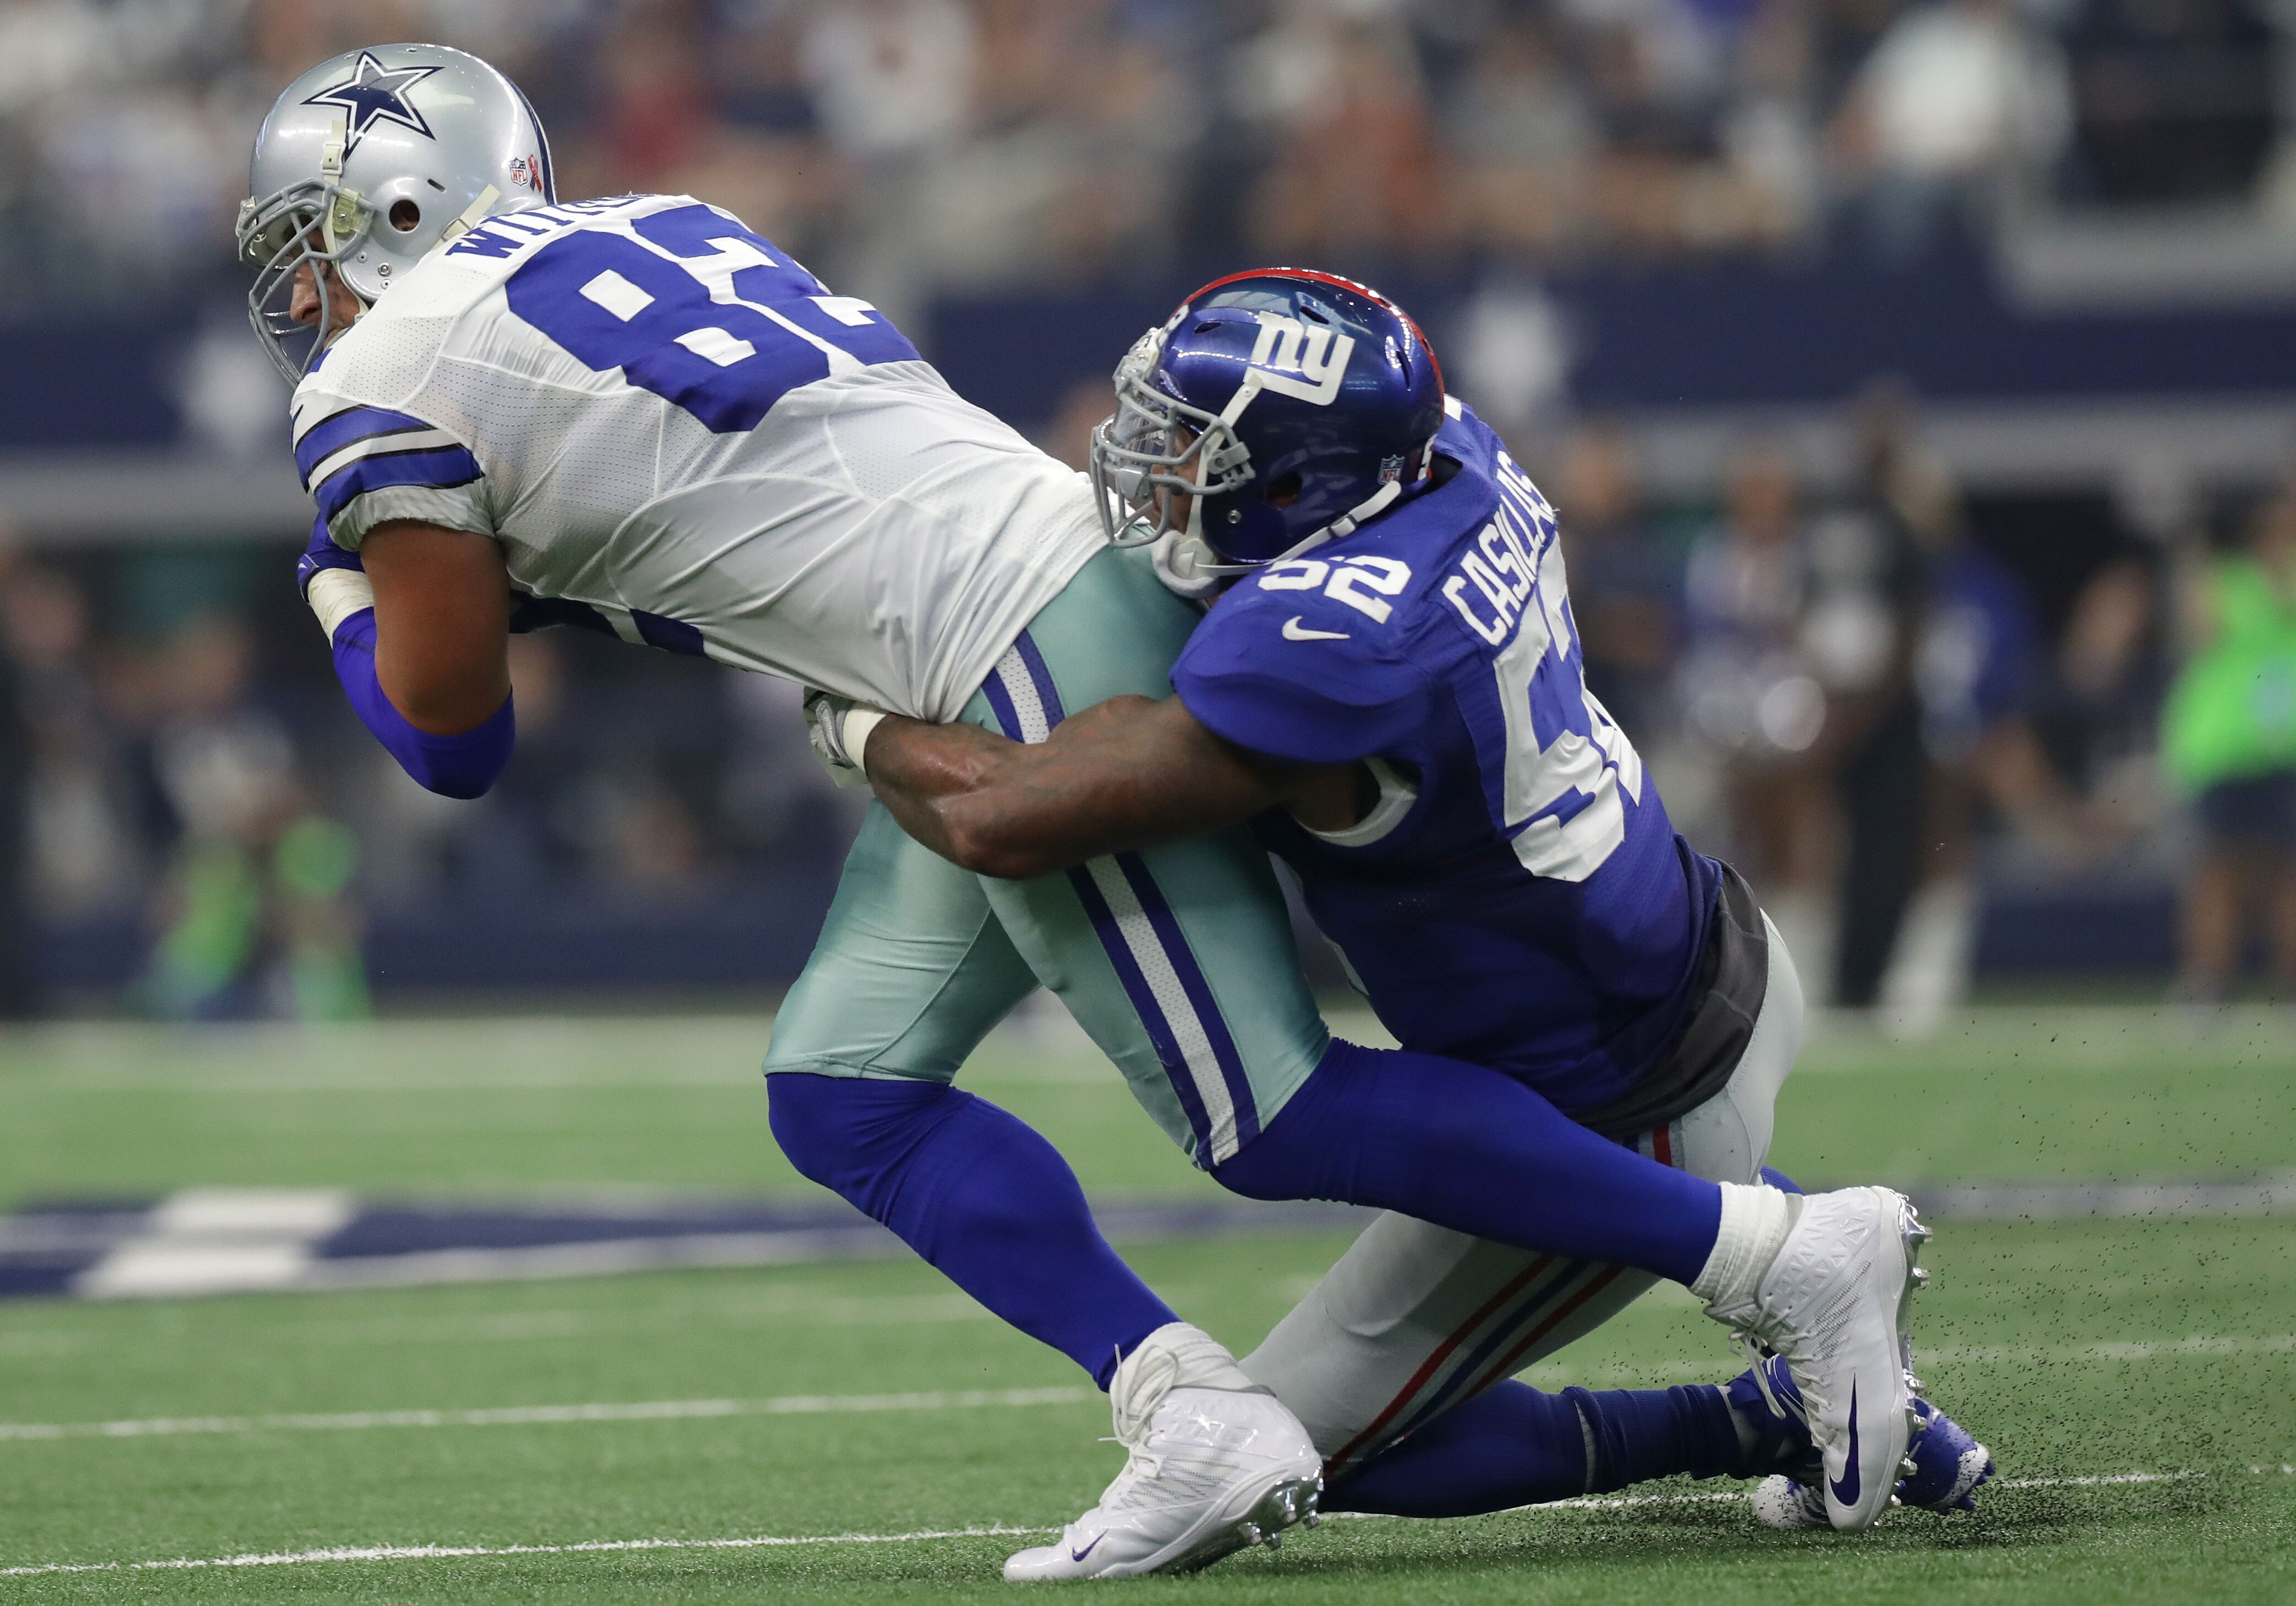 Dallas Cowboys Vs. New York Giants: What To Watch For